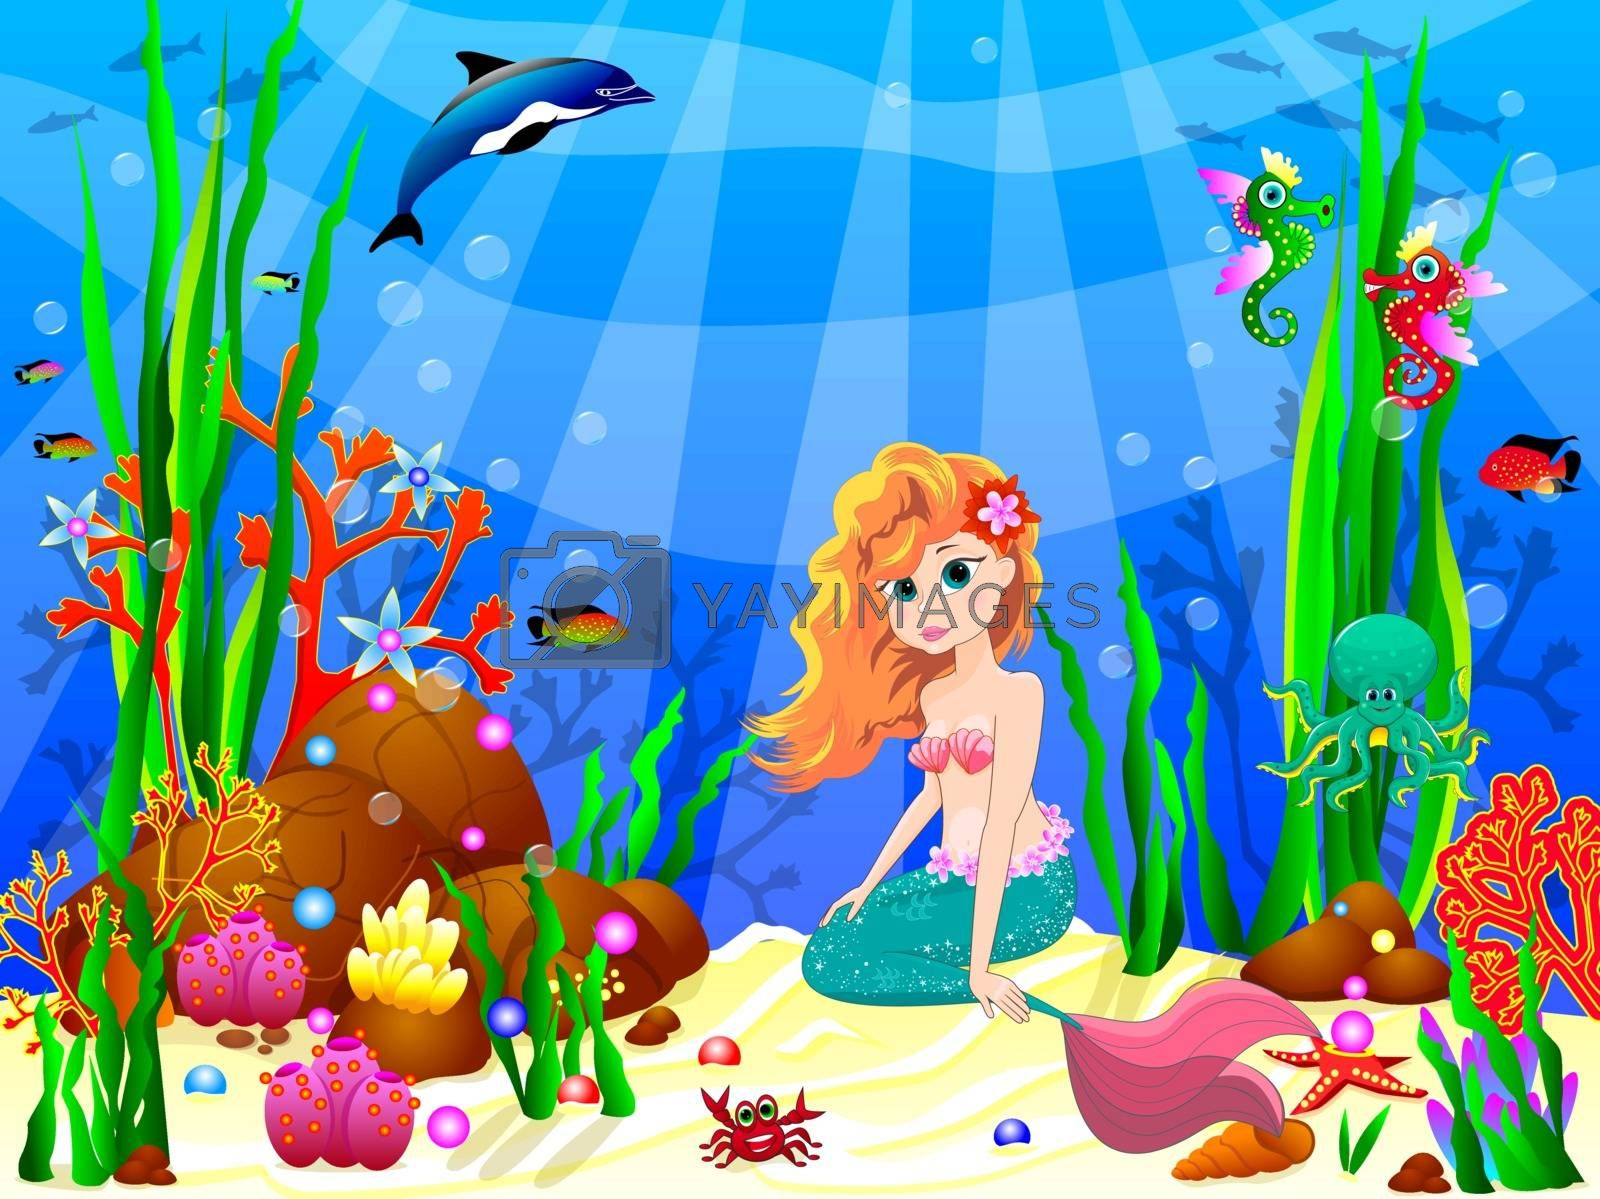 The little mermaid underwater among sea creatures and underwater plants. Cute mermaid sitting on the bottom of the sea.